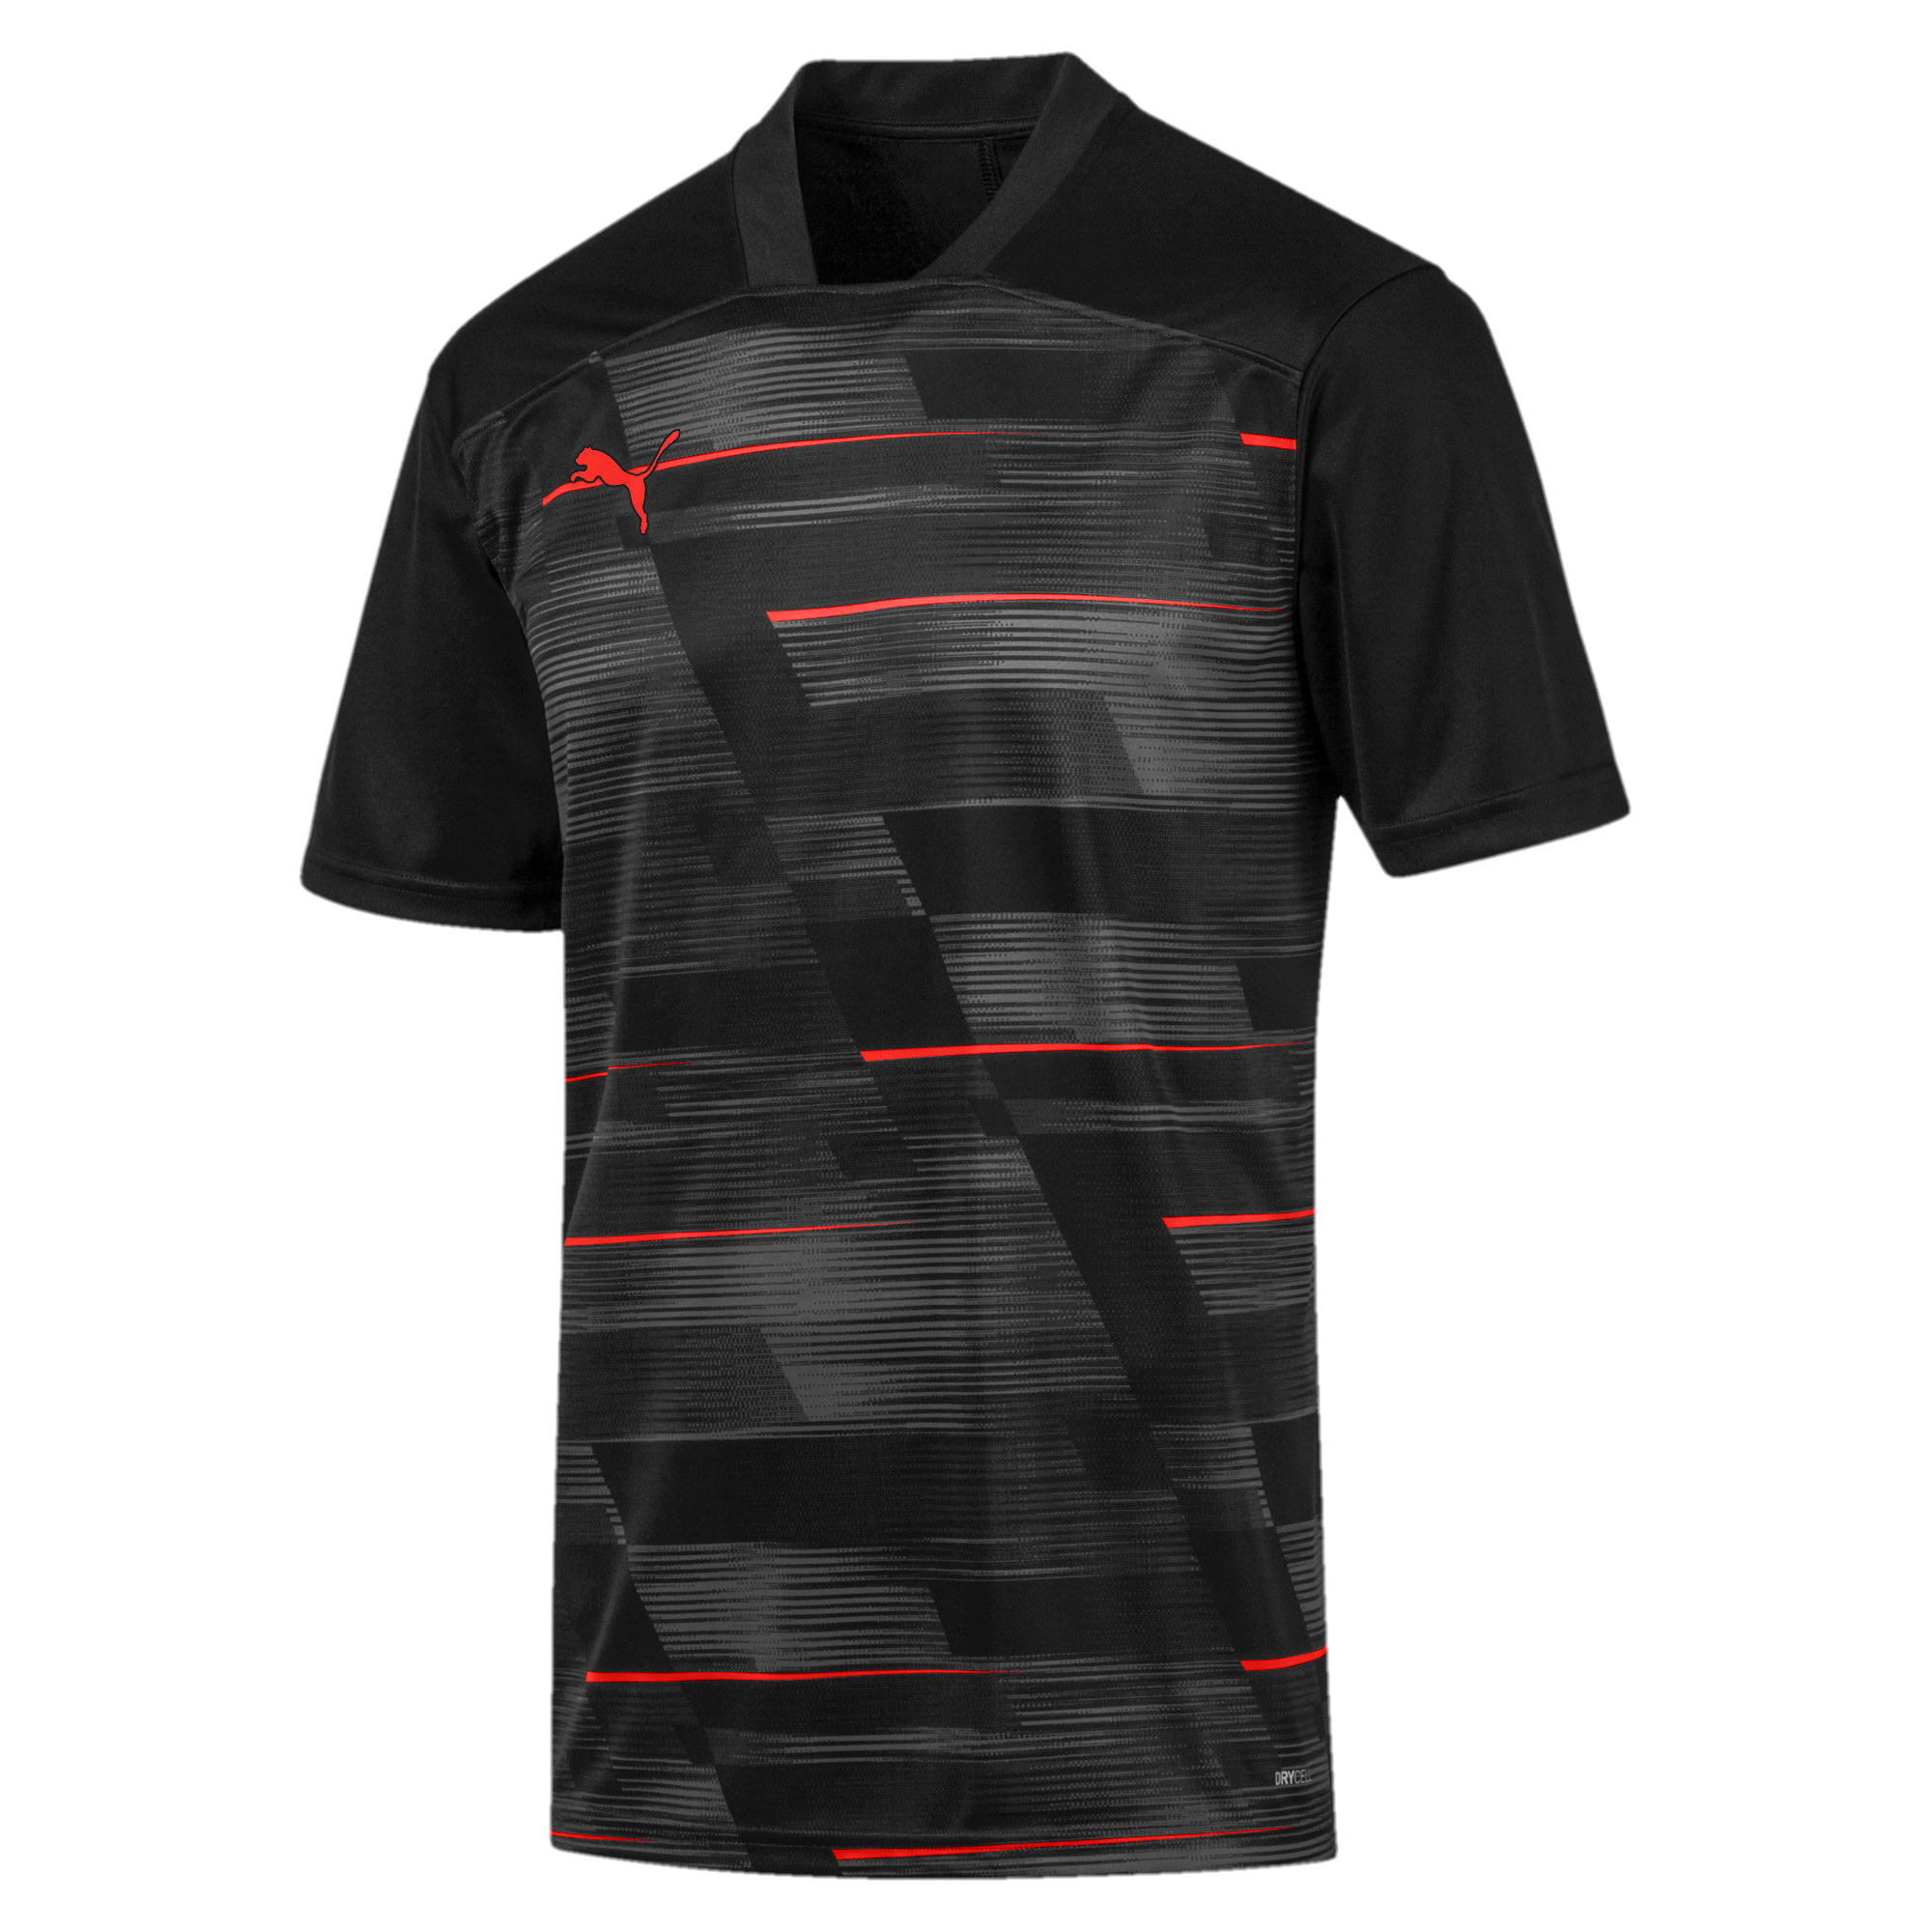 Thumbnail 4 of Graphic Herren T-Shirt, Puma Black-Nrgy Red, medium